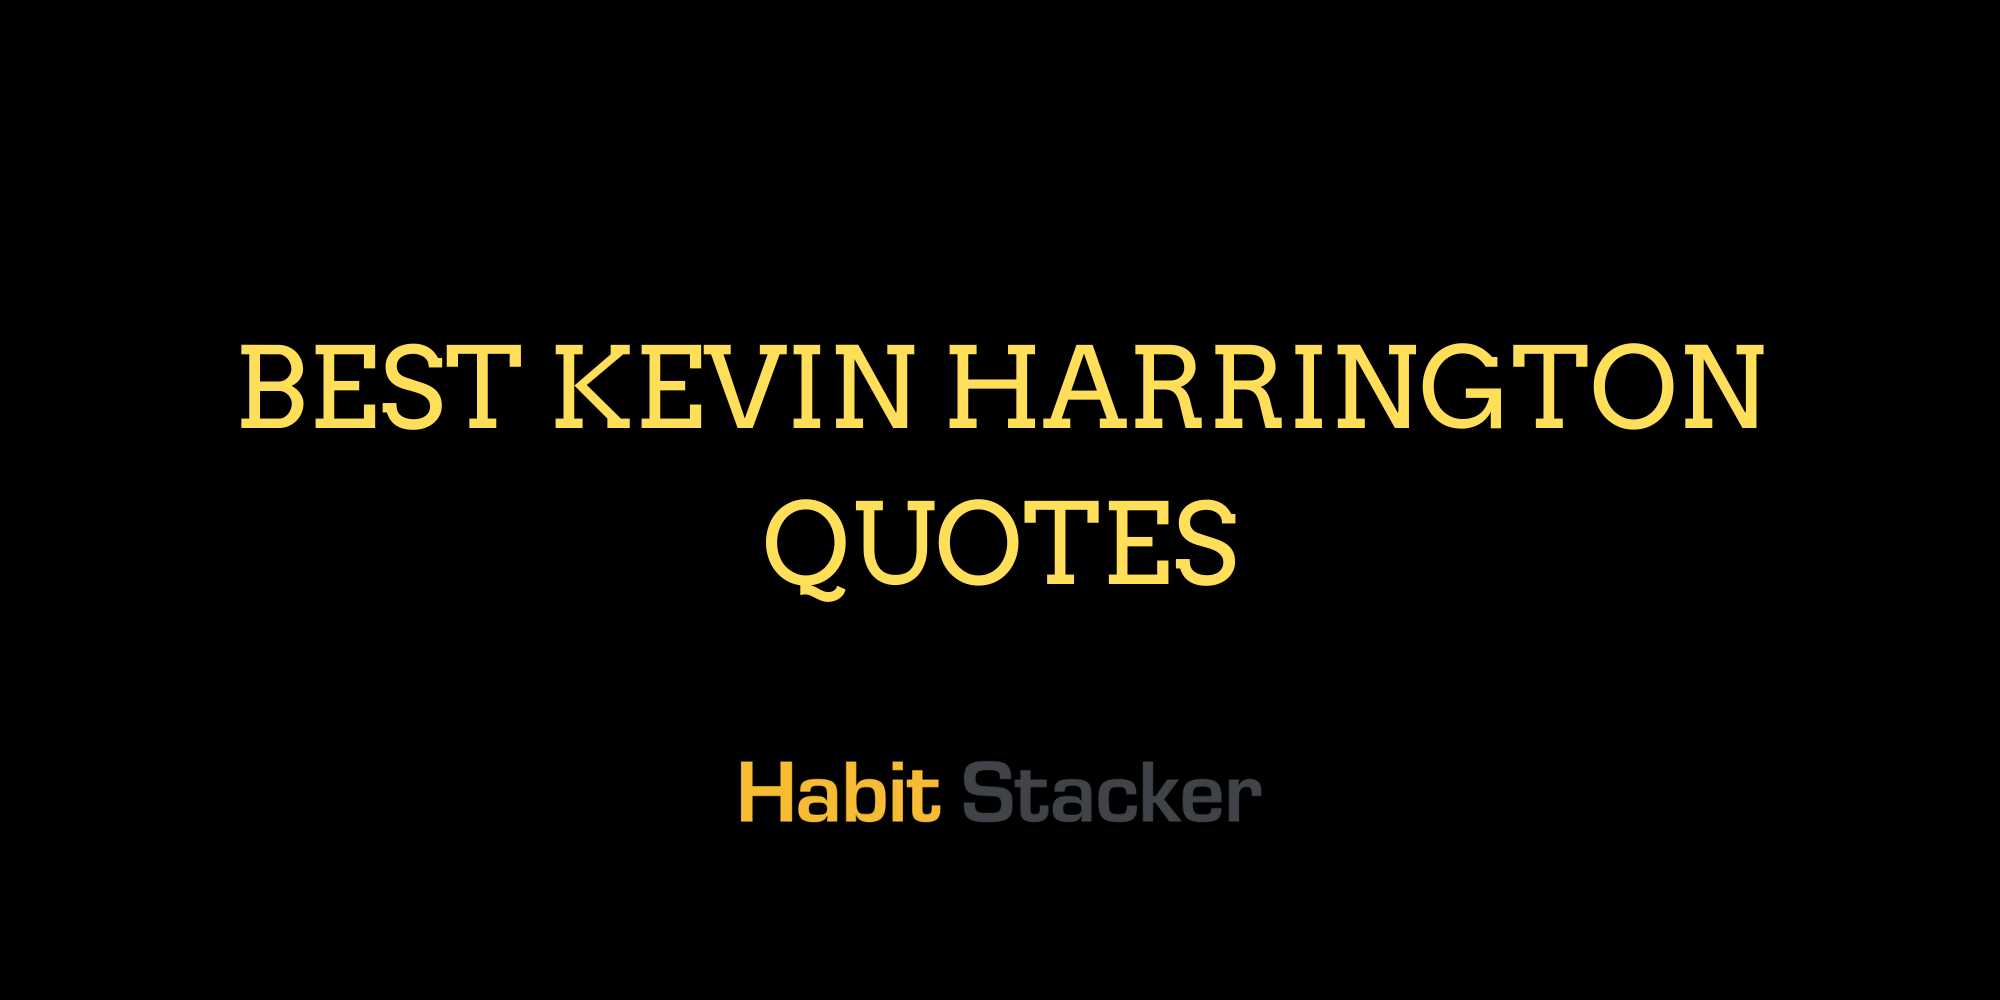 Best Kevin Harrington Quotes